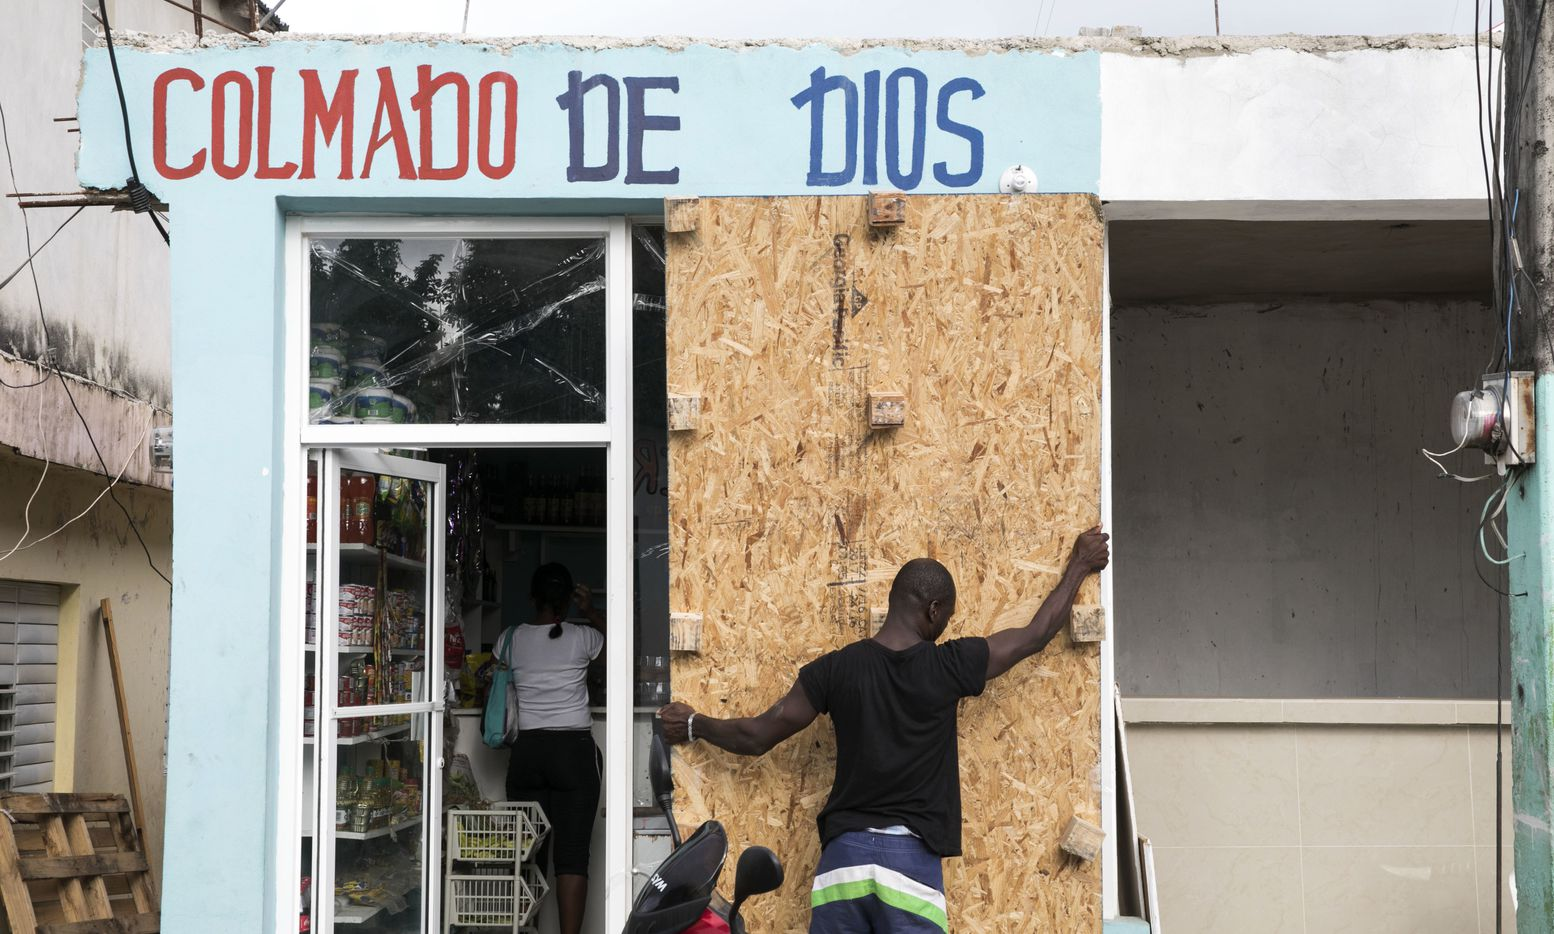 A man covers a bodega's windows before the arrival of Hurricane Irma in Las Terrenas, Dominican Republic, on Wednesday.